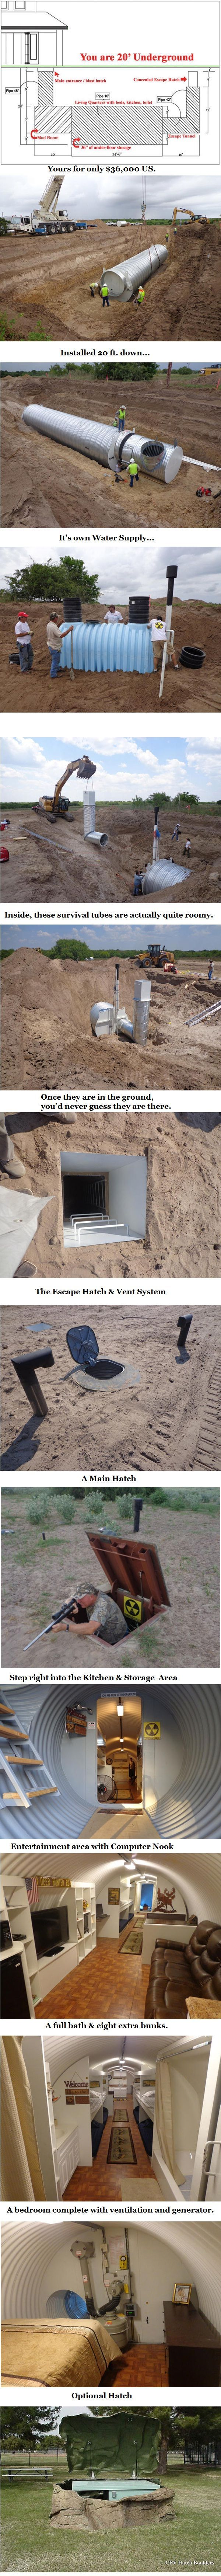 Atlas Survival Shelters #Survival #Preppers https://s-media-cache-ak0.pinimg.com/originals/54/e0/9b/54e09b8803a985cfb3f0a0a135e74988.jpg